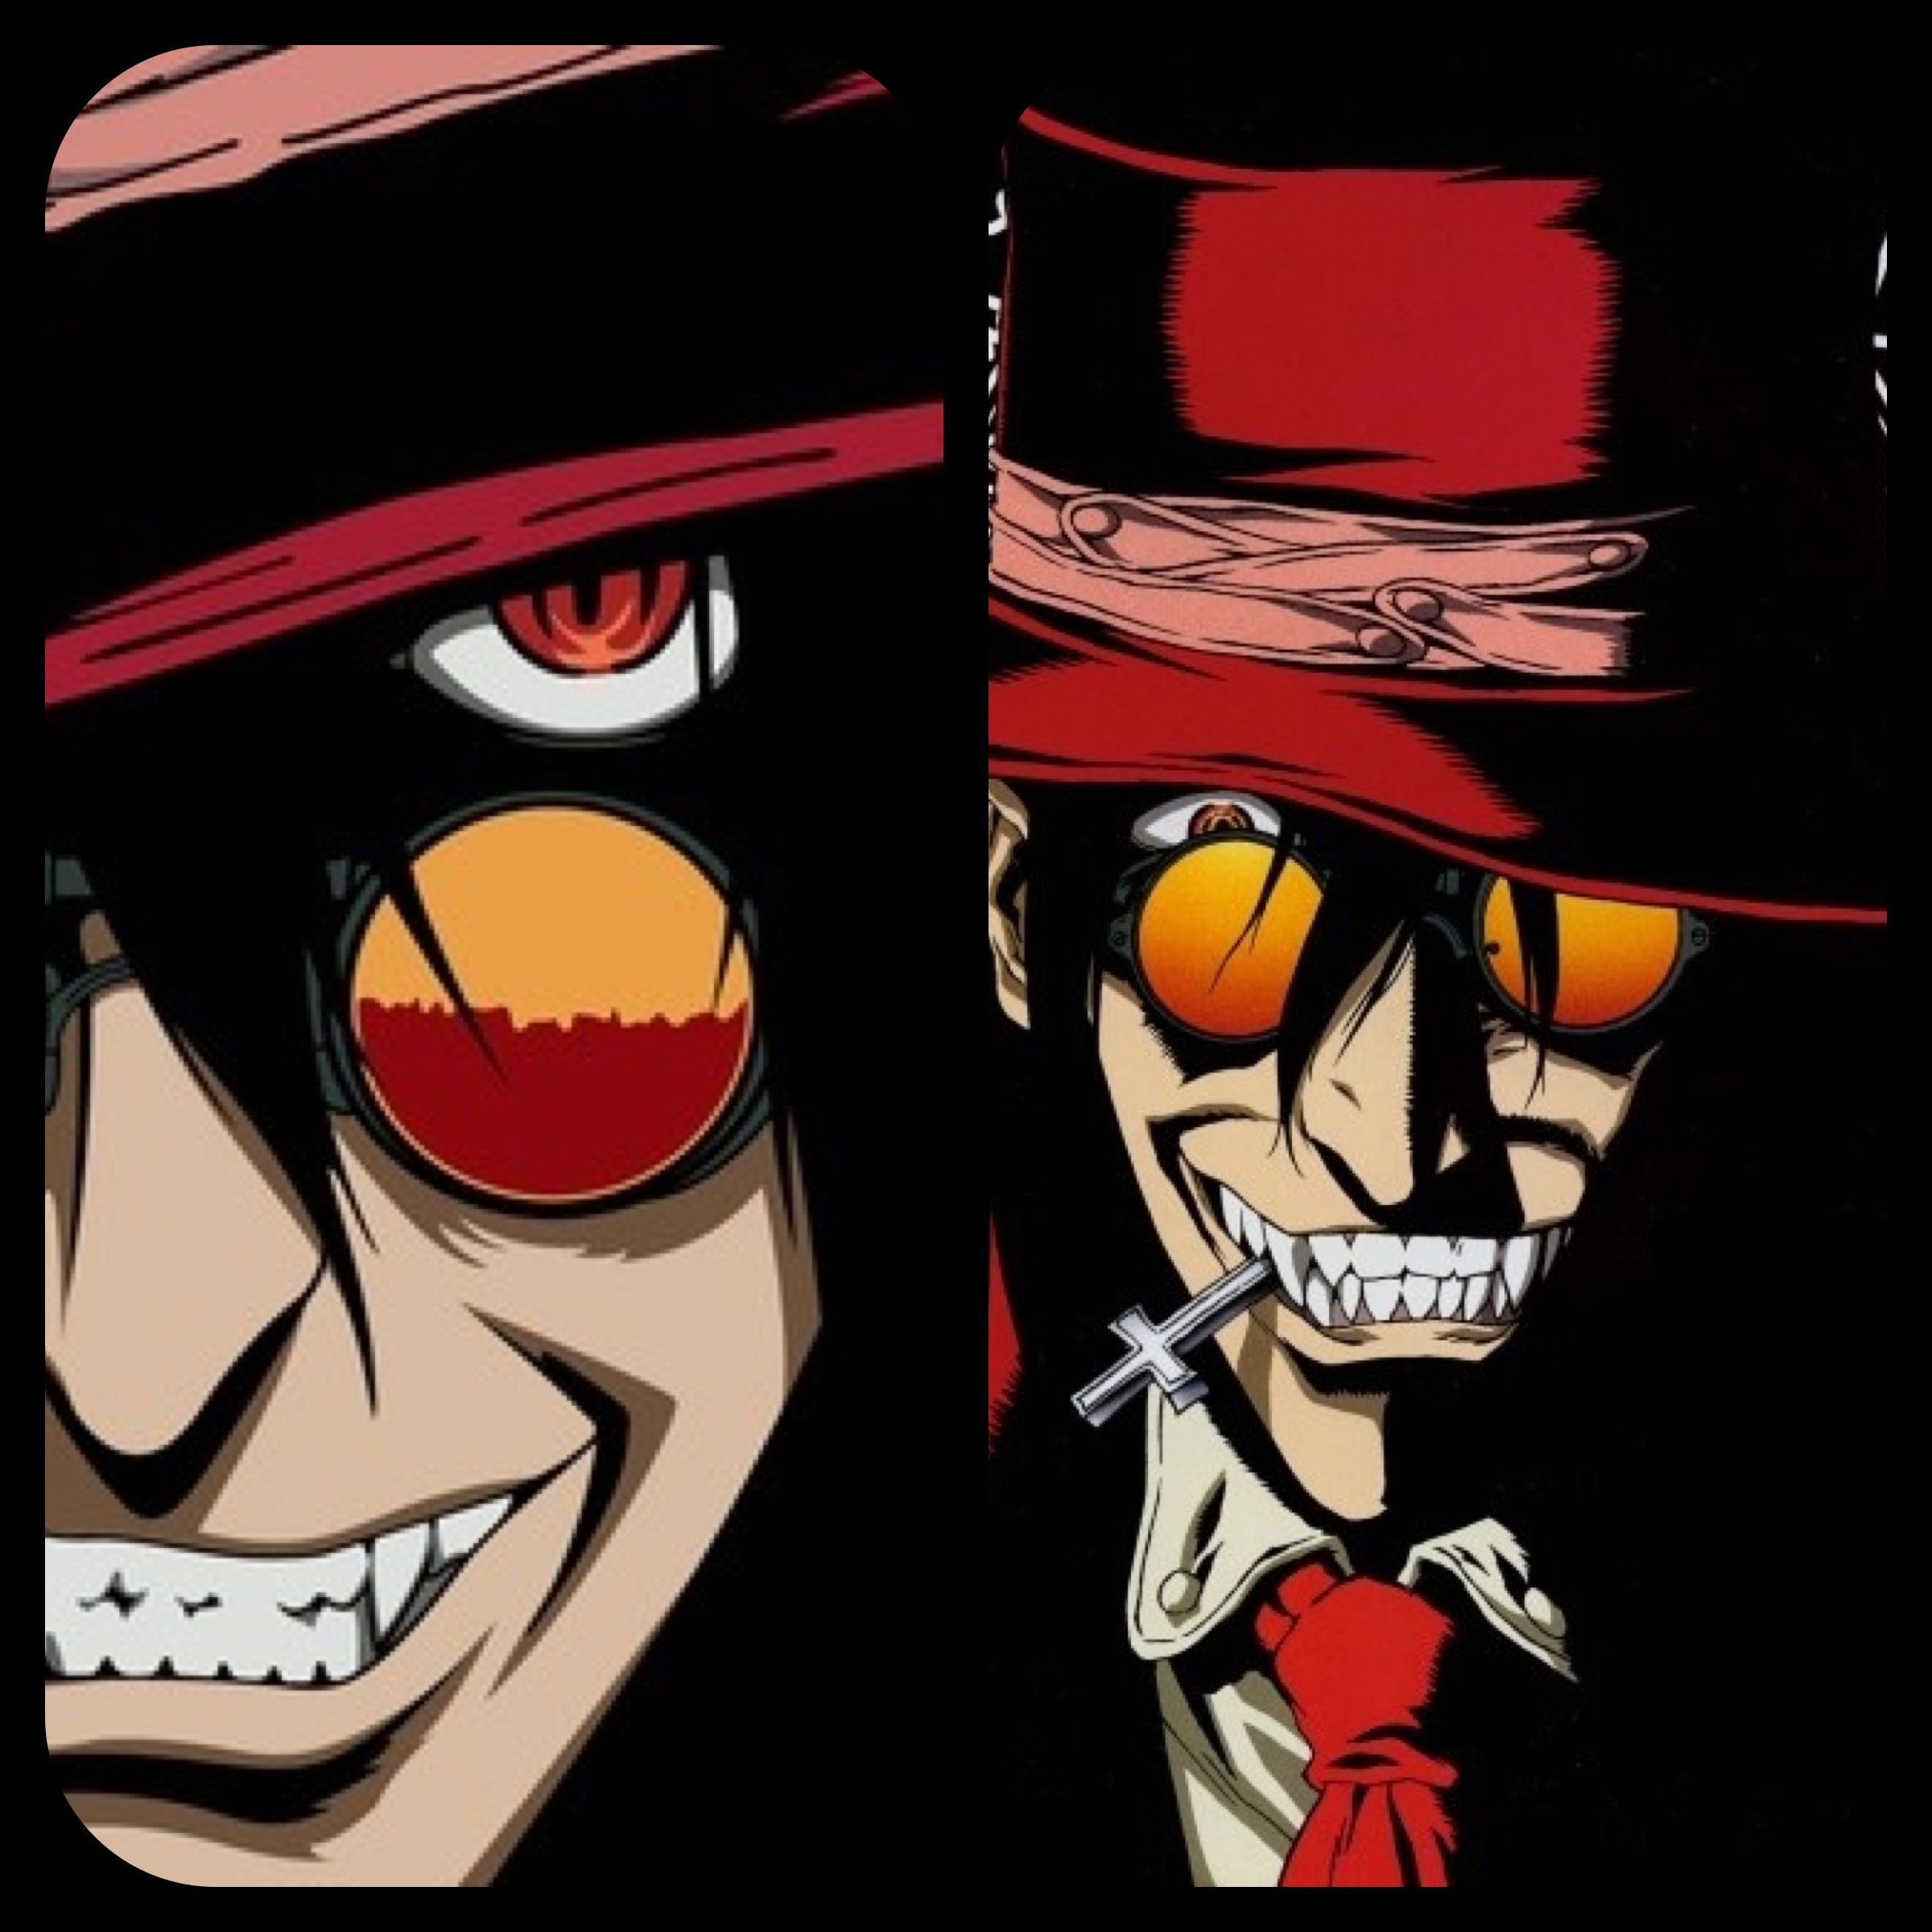 Hellsing (Hellsing Ultimate is on my towatch list